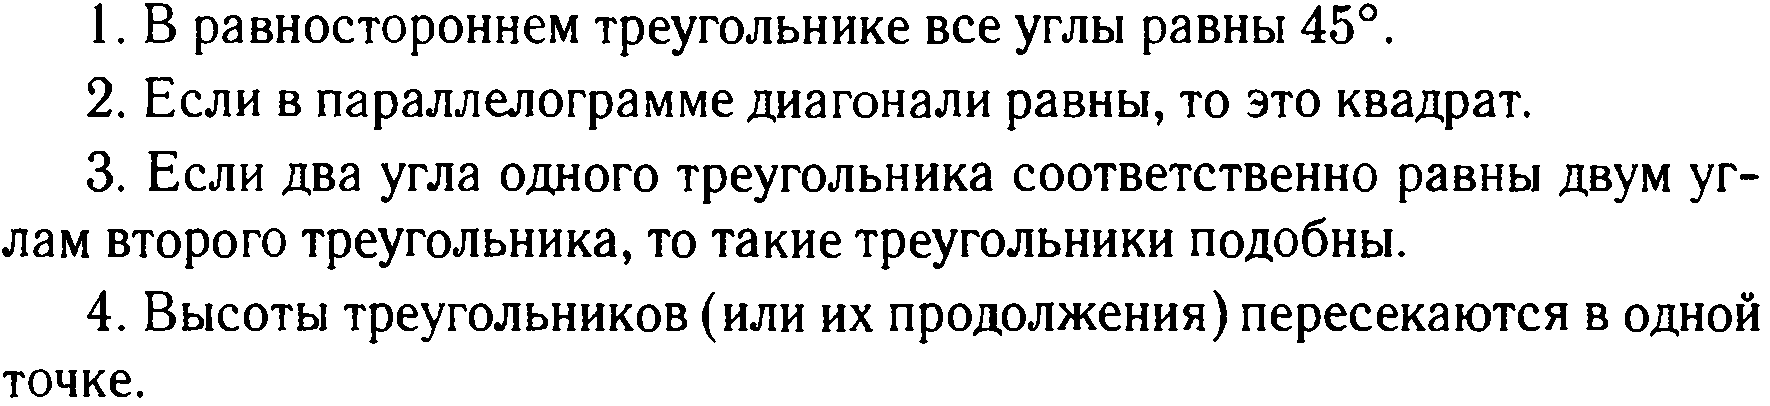 http://doc4web.ru/uploads/files/77/77306/hello_html_m42f84d3.png